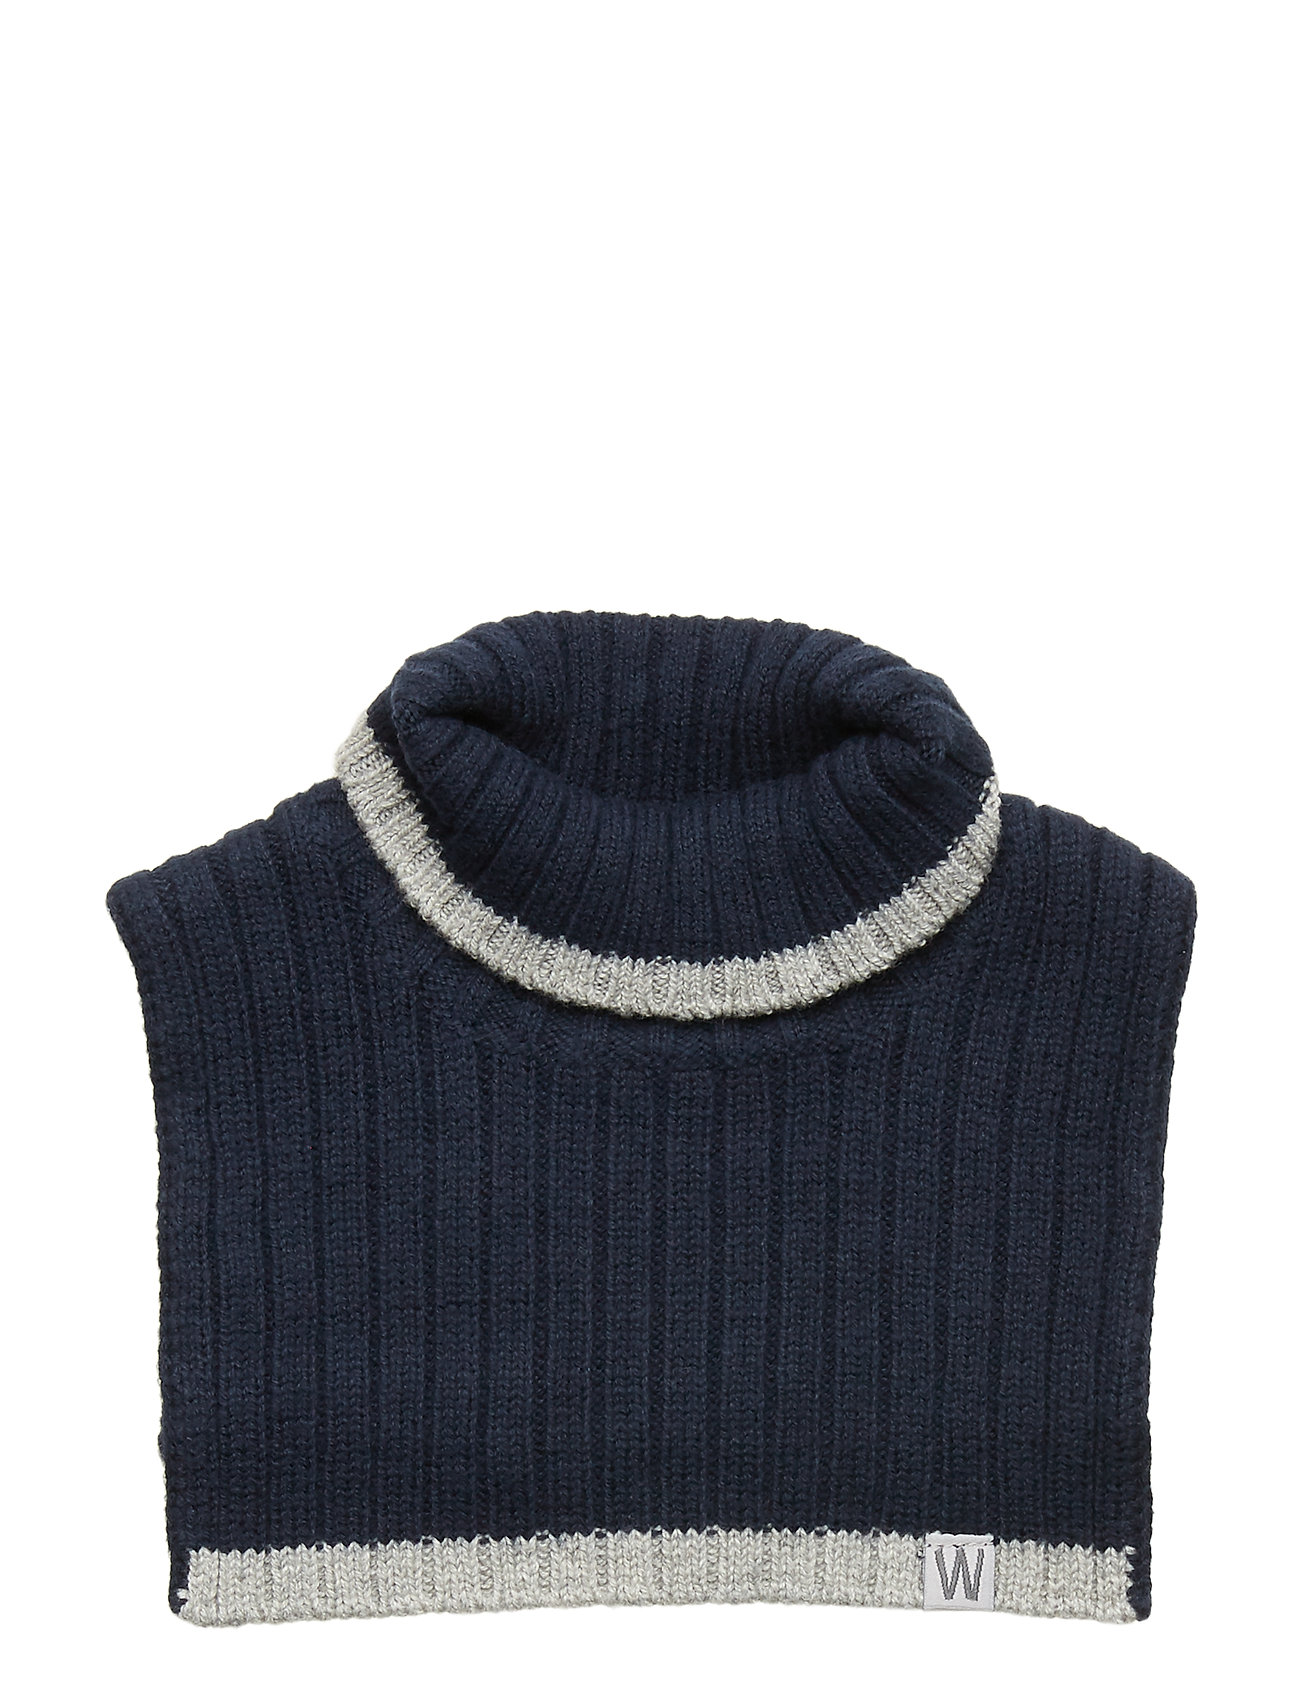 Wheat Knitted Neck Warmer - NAVY